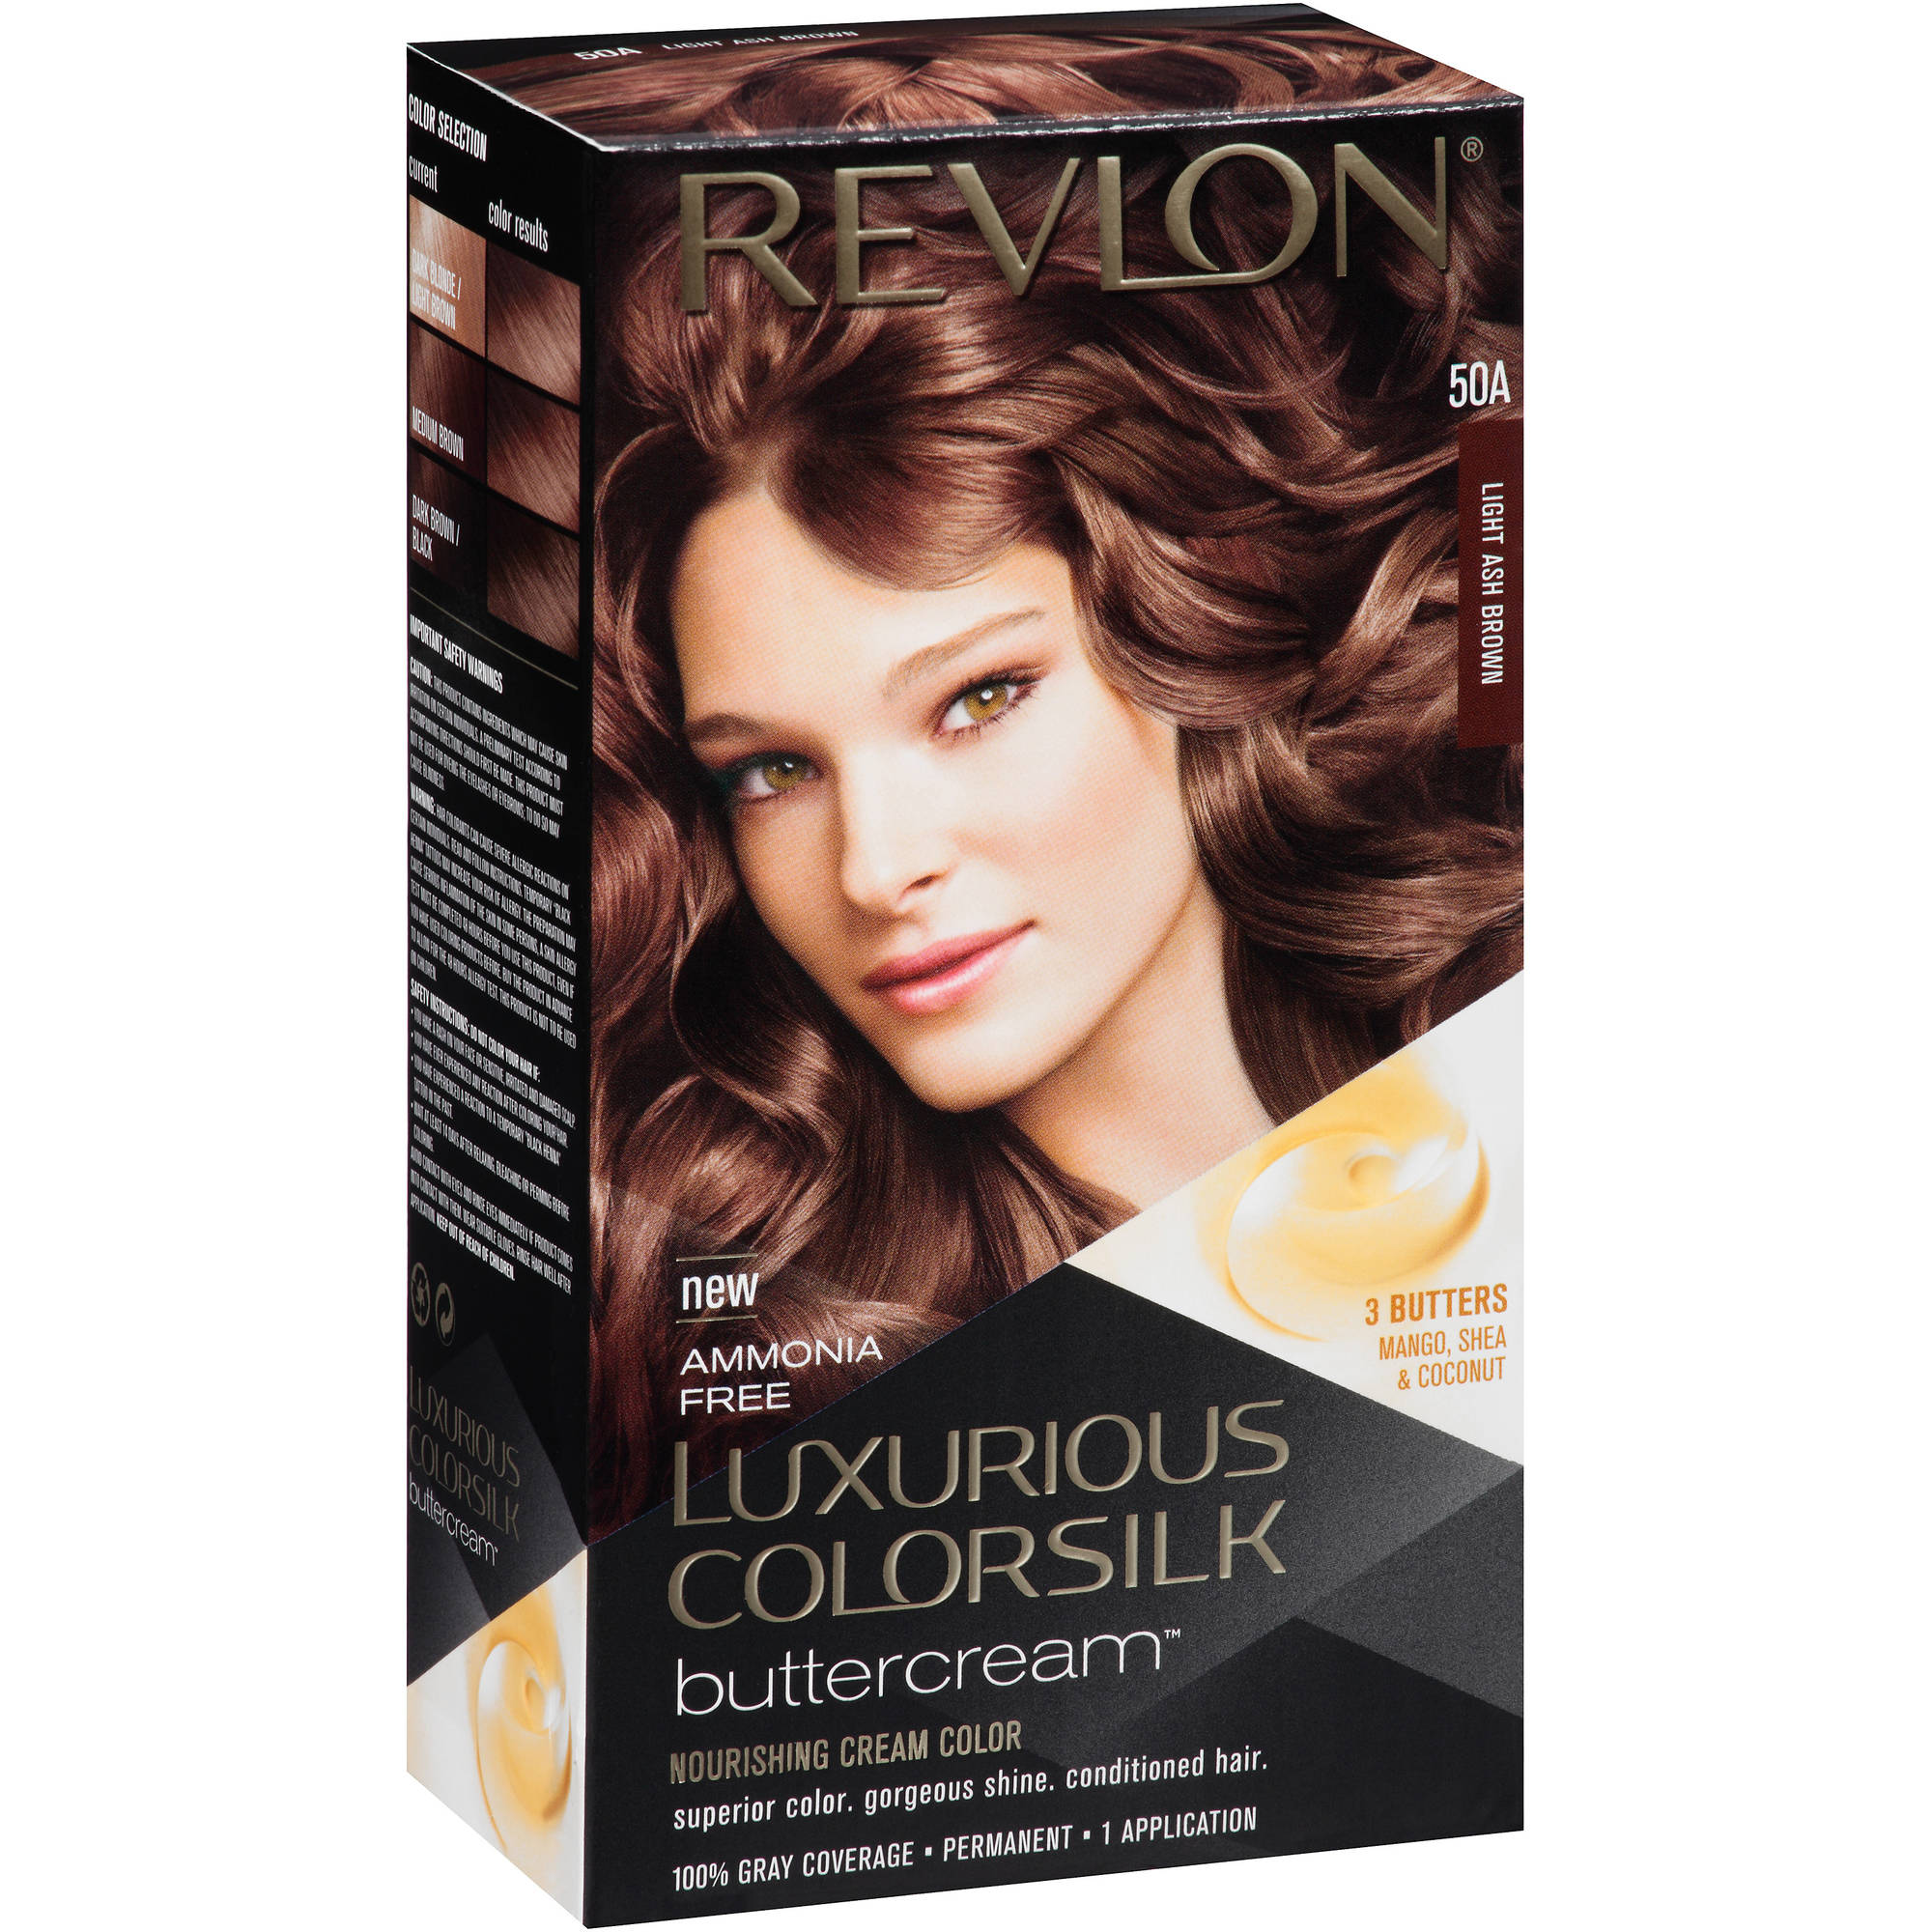 Revlon Luxurious Colorsilk Buttercream Nourishing Cream Color, 50A Light Ash Brown